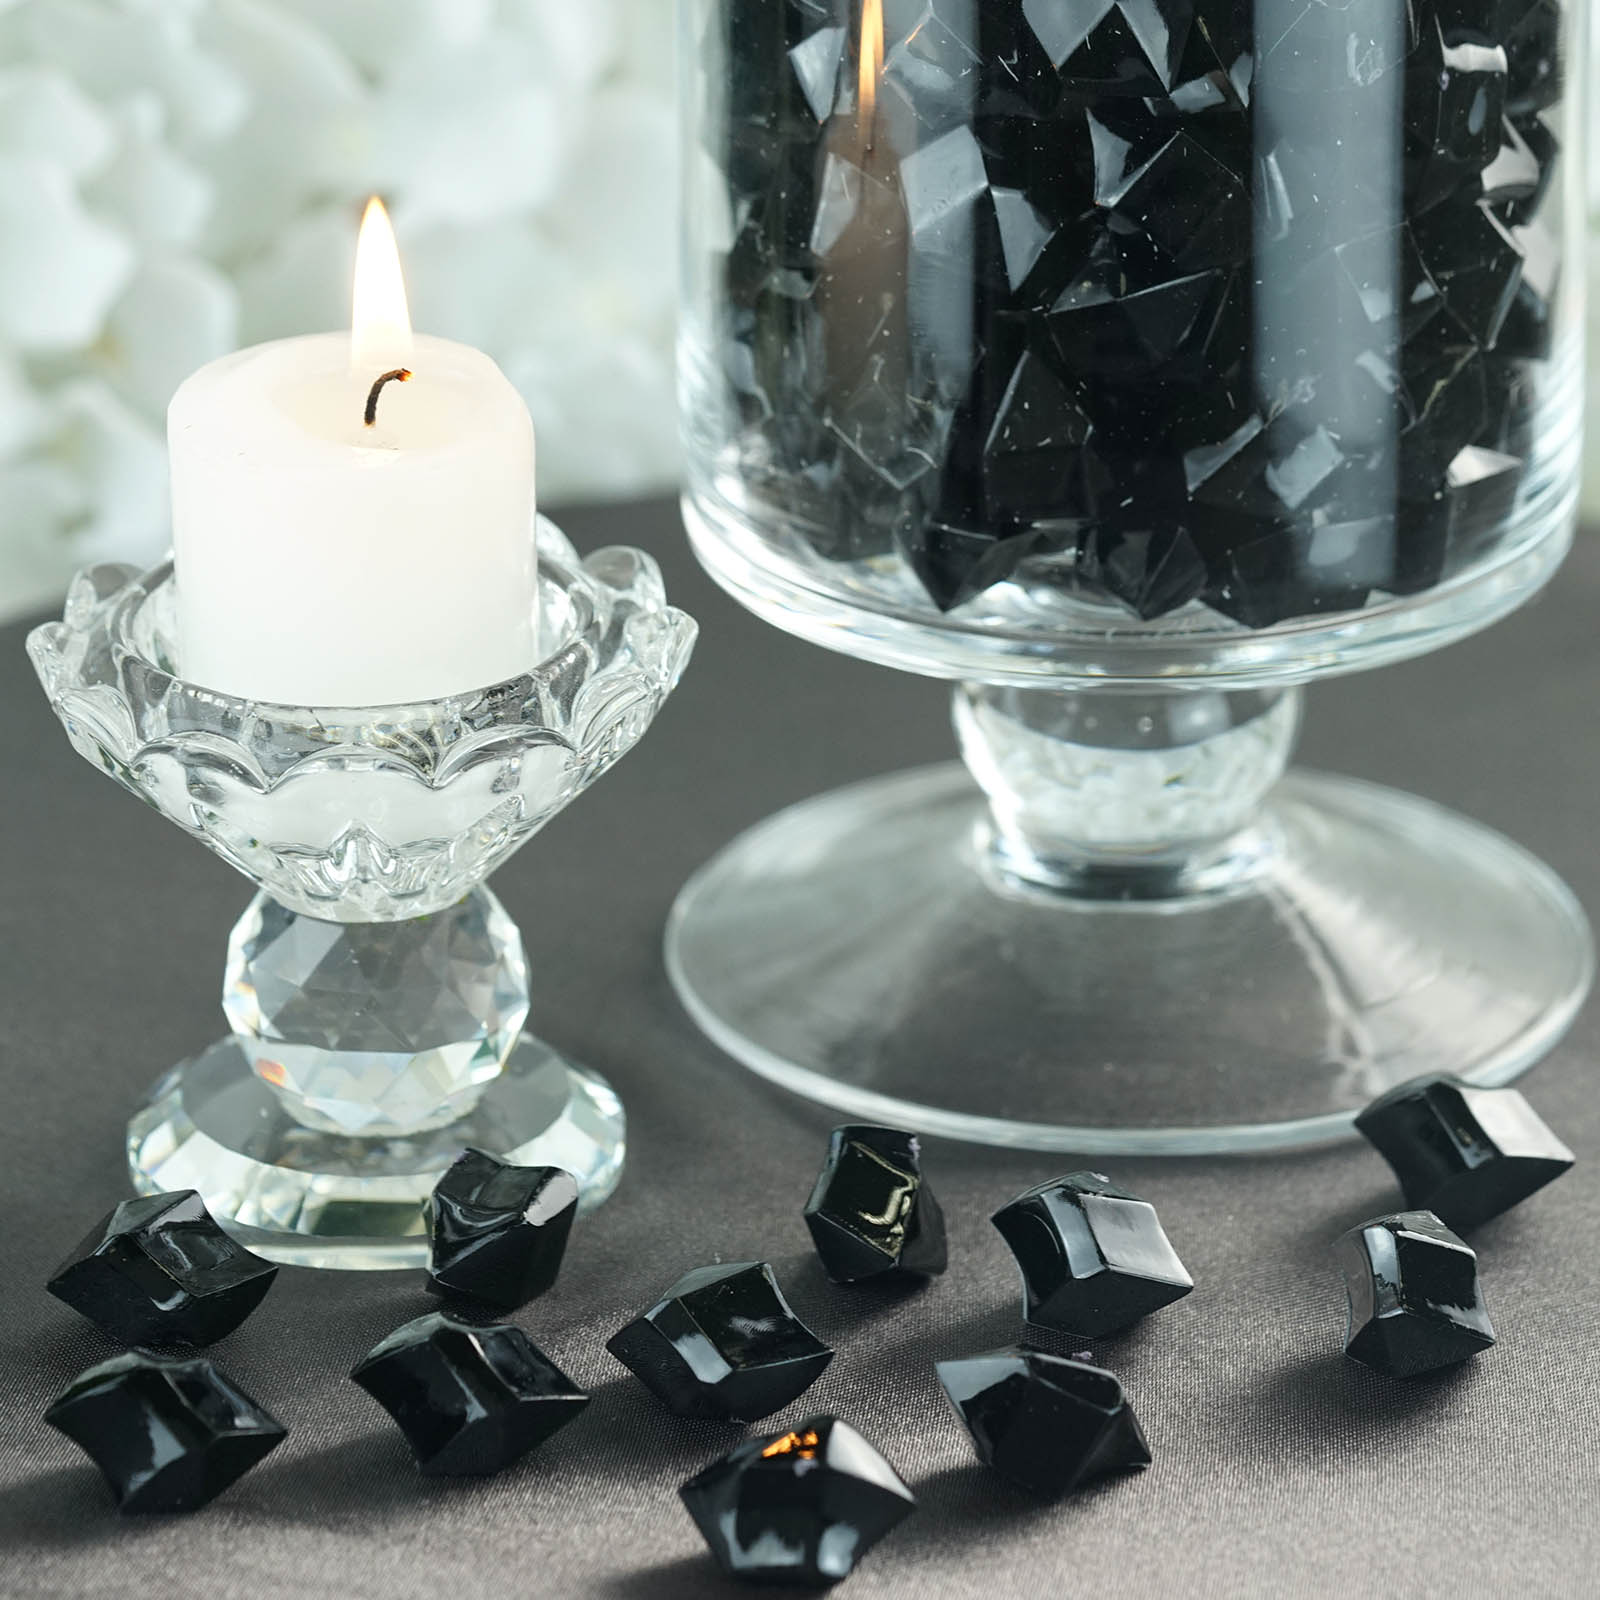 300-Acrylic-Ice-CRYSTAL-LIKE-Pieces-Wedding-Centerpieces-Decorations-Supplies thumbnail 8